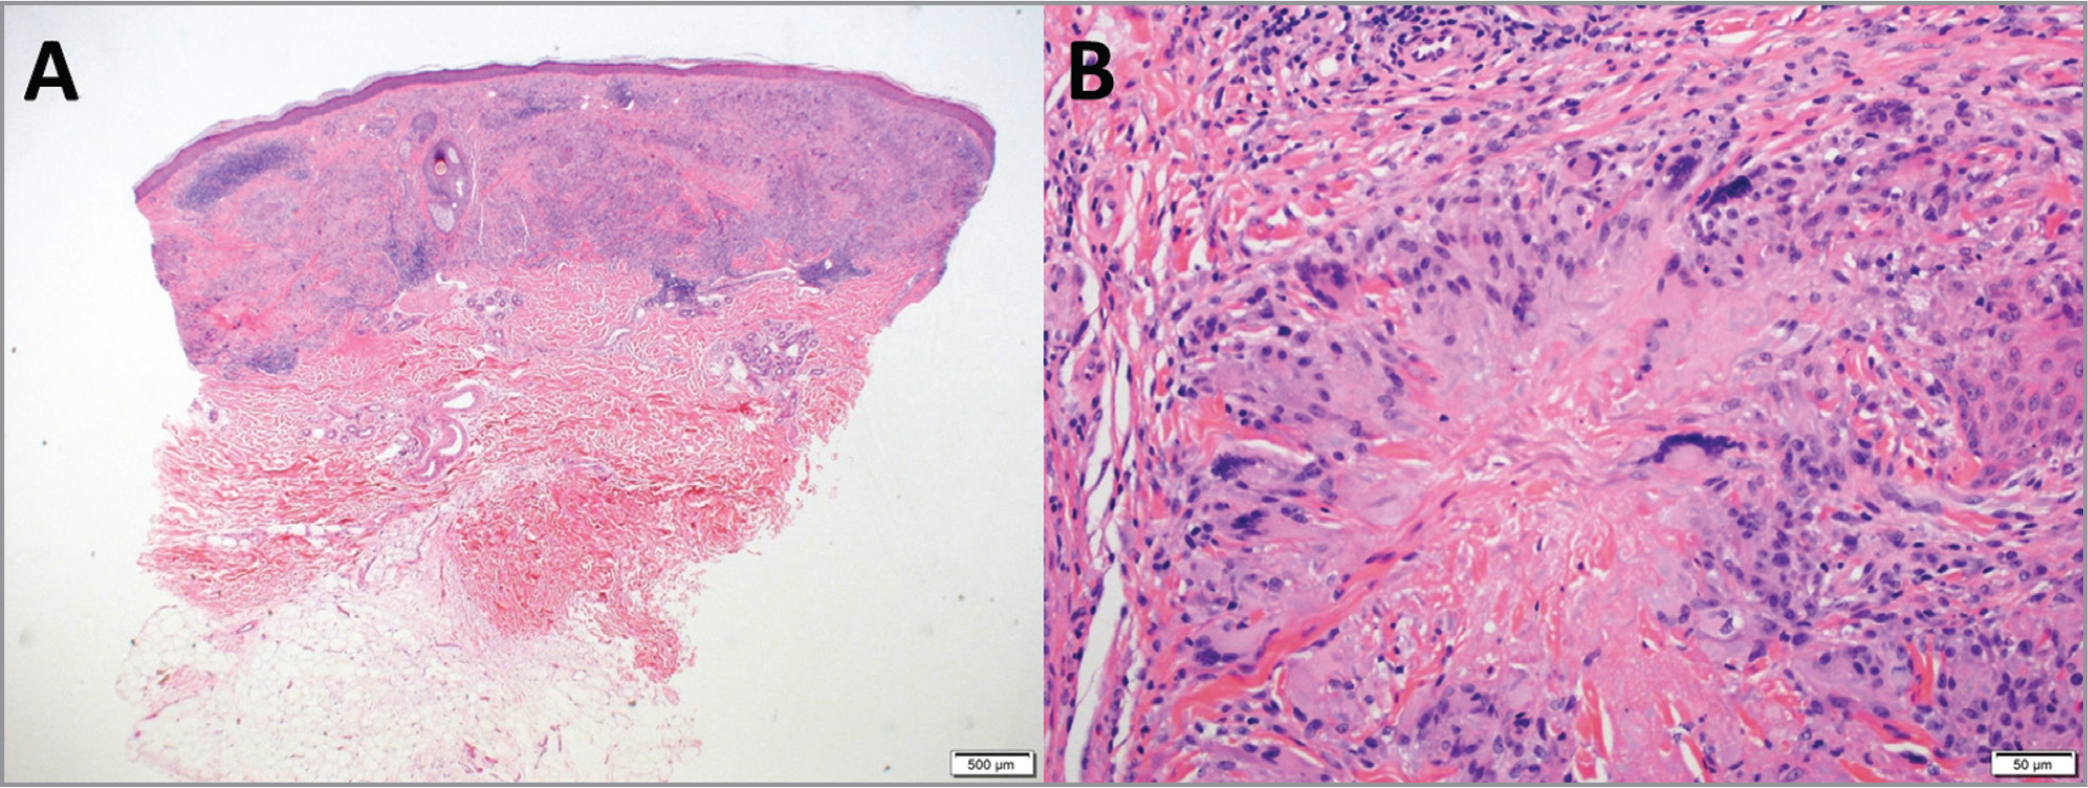 Left forearm skin lesion biopsy shows in low power (A; hematoxylin-eosin stain; original magnification × 20) granulomatous inflammatory infiltrate involving the upper- and mid-dermis. Higher-power view (B; hematoxylin-eosin stain; original magnification × 200) reveals palisading of histiocytes and multinucleated giant cells around area of necrobiosis characteristic of granuloma annulare.